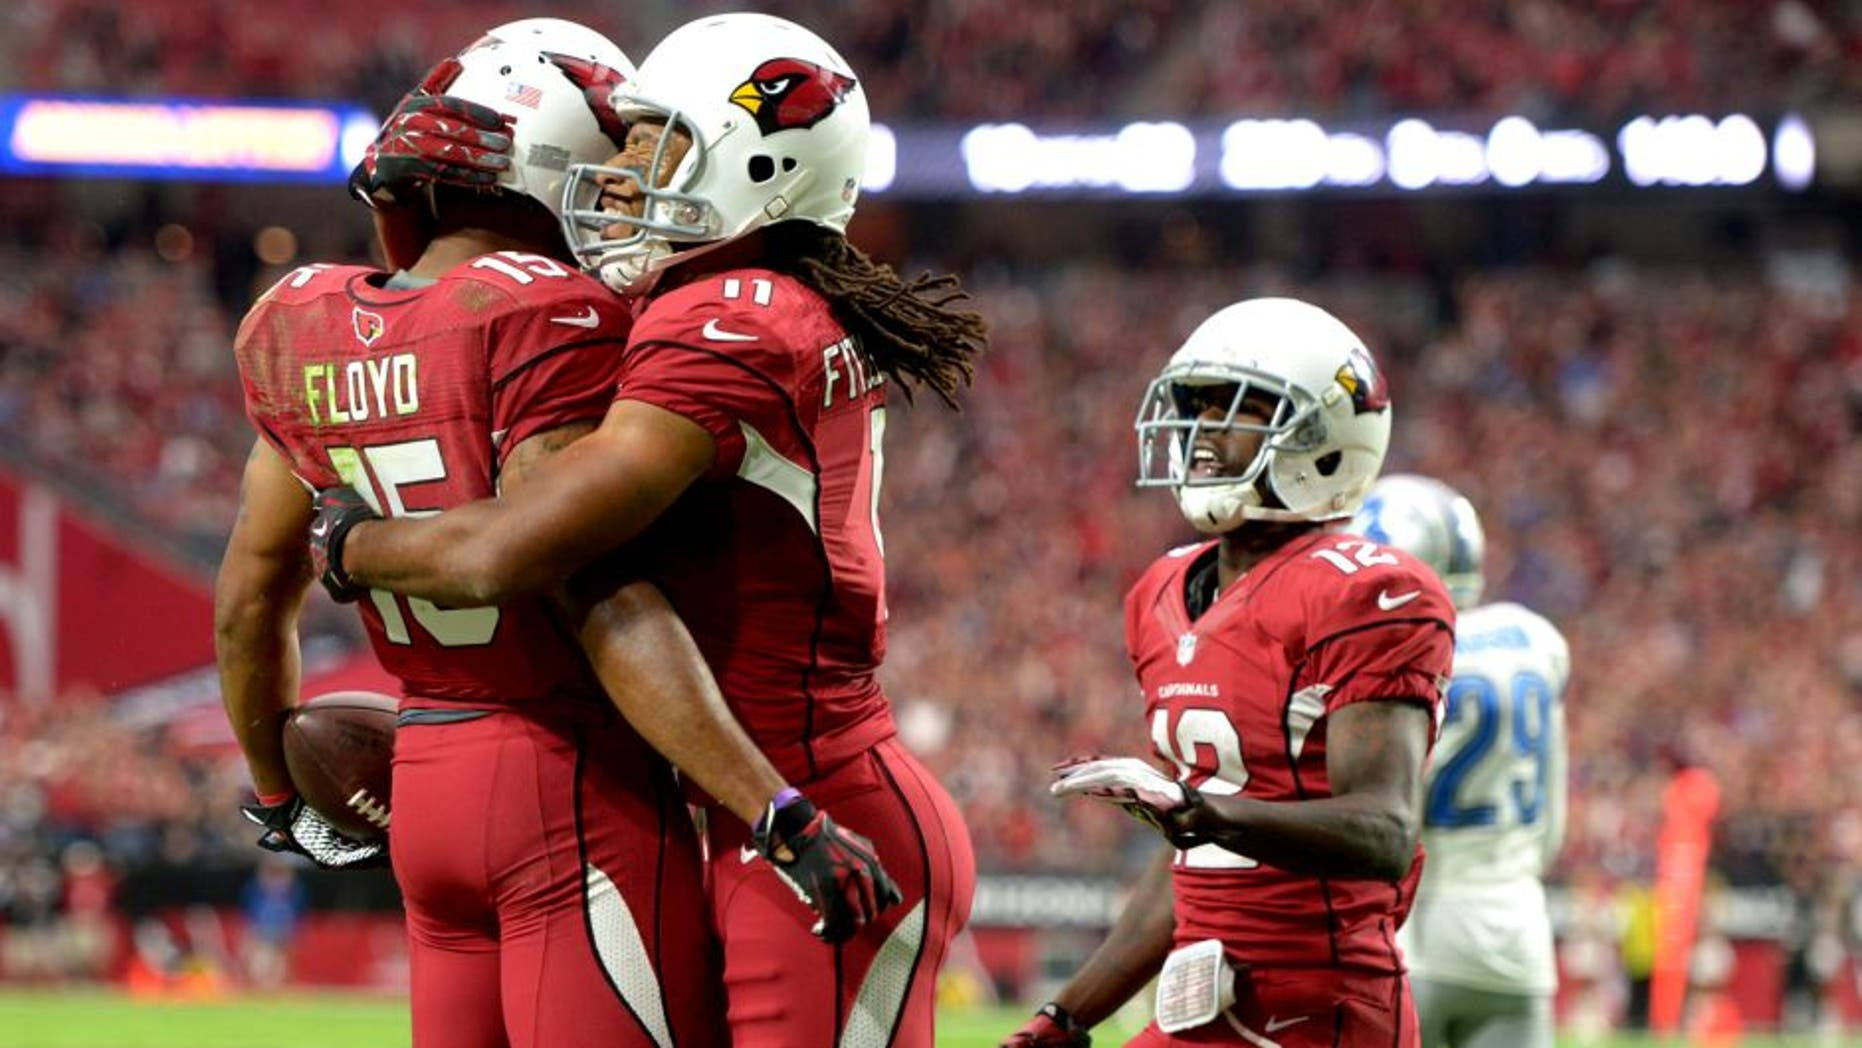 Nov 16, 2014; Glendale, AZ, USA; Arizona Cardinals receiver Michael Floyd (15) celebrates with receivers Larry Fitzgerald (11) and John Brown (12) after scoring on a 12-yard touchdown pass in the first quarter against the Detroit Lions at University of Phoenix Stadium. Mandatory Credit: Kirby Lee-USA TODAY Sports